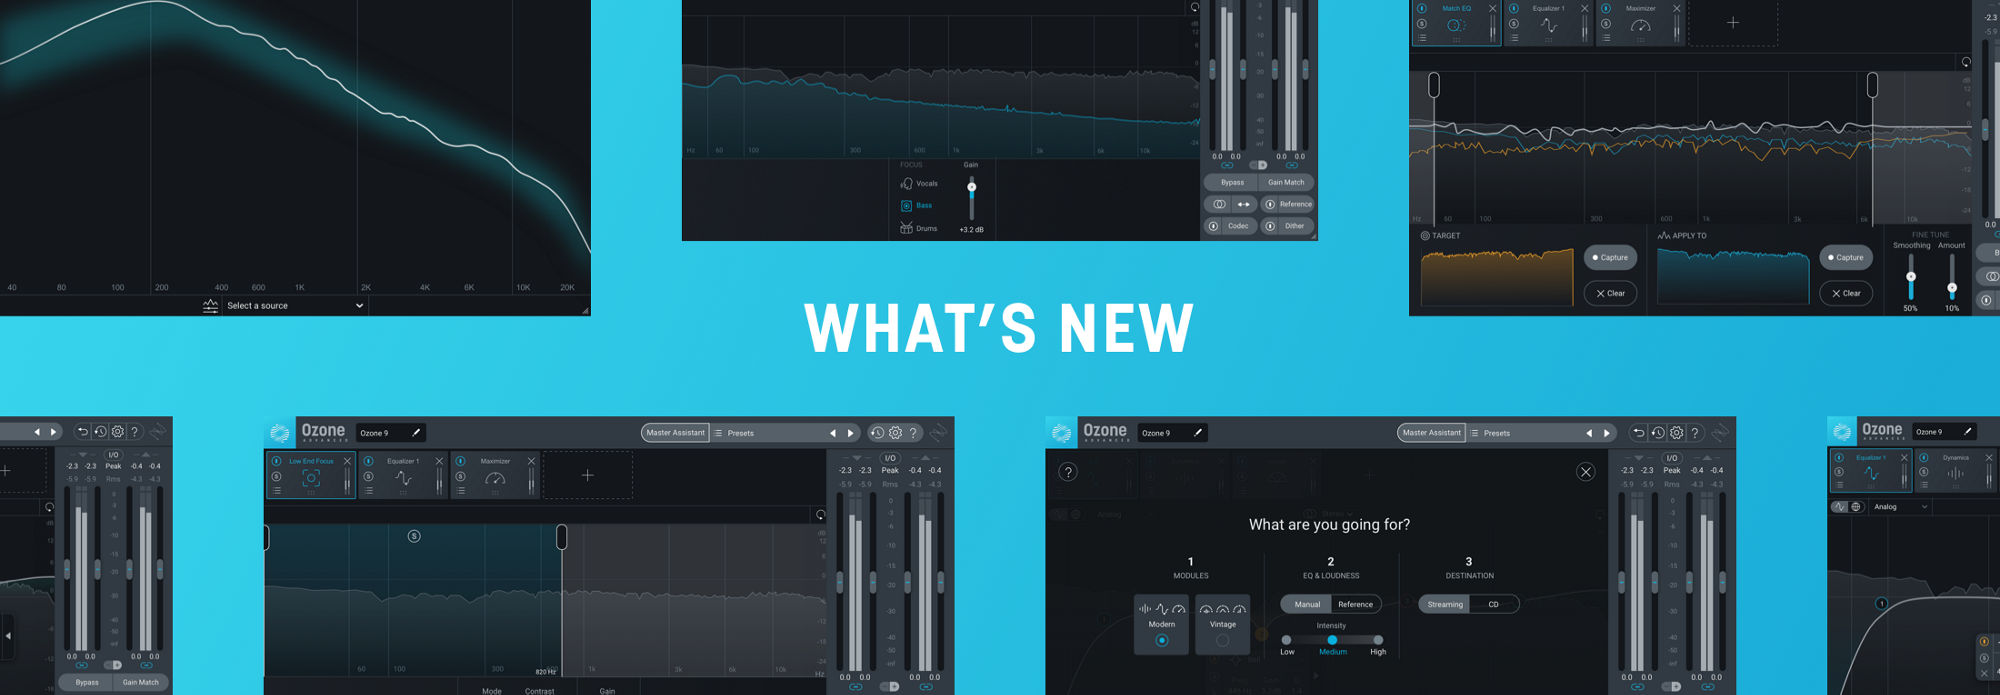 Discover what's new in Ozone 9.